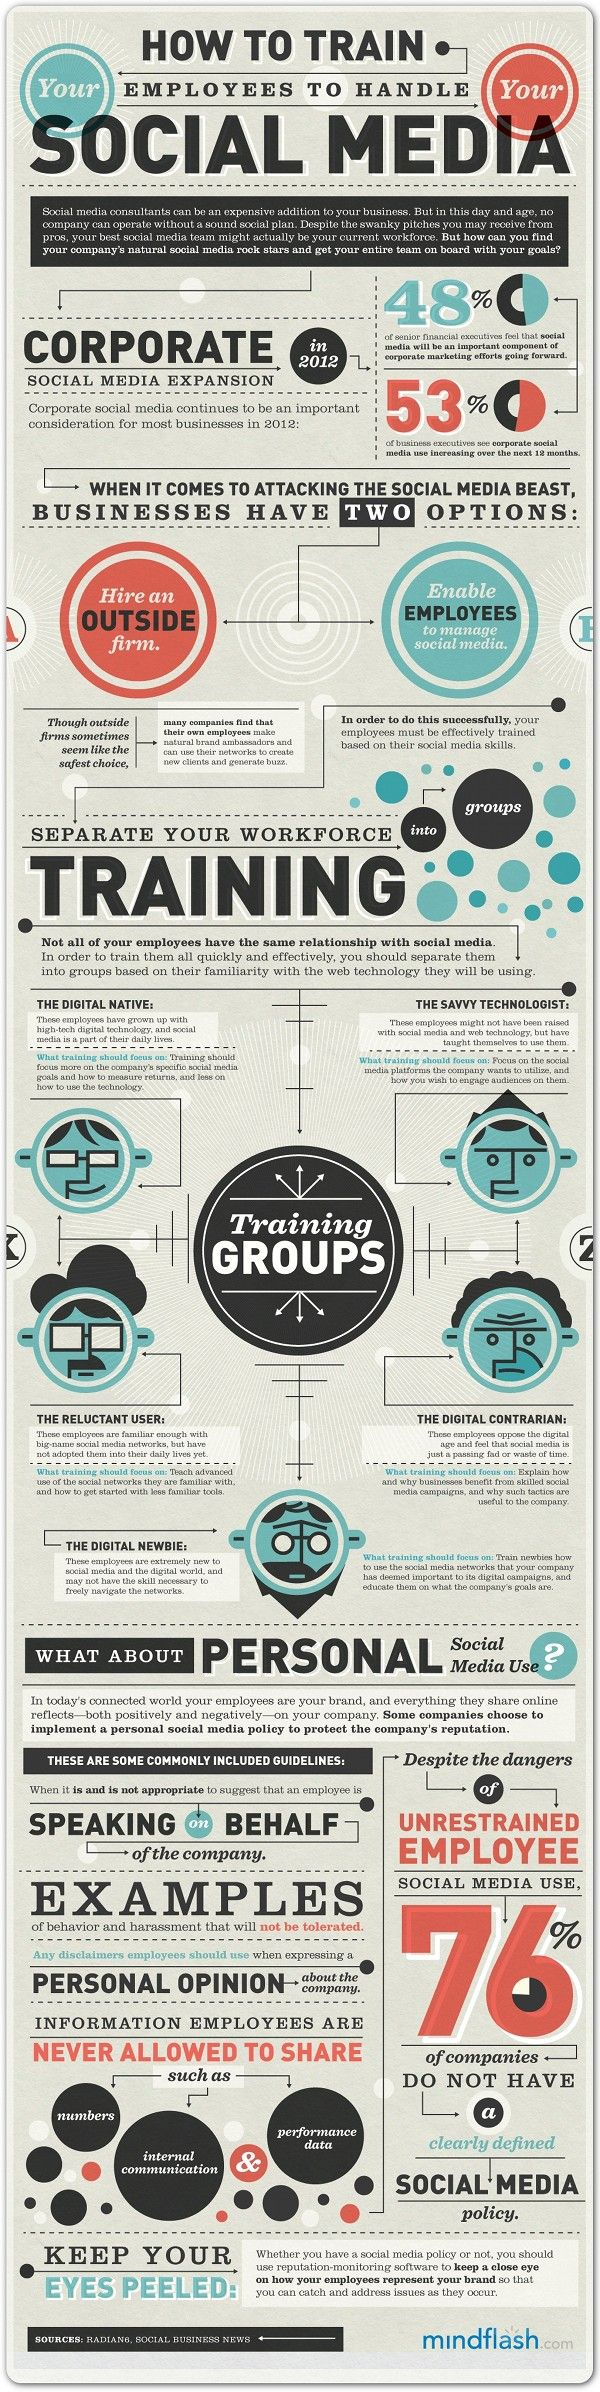 Train employees to handle social media infographic. I relish the challenge of a contrarian!